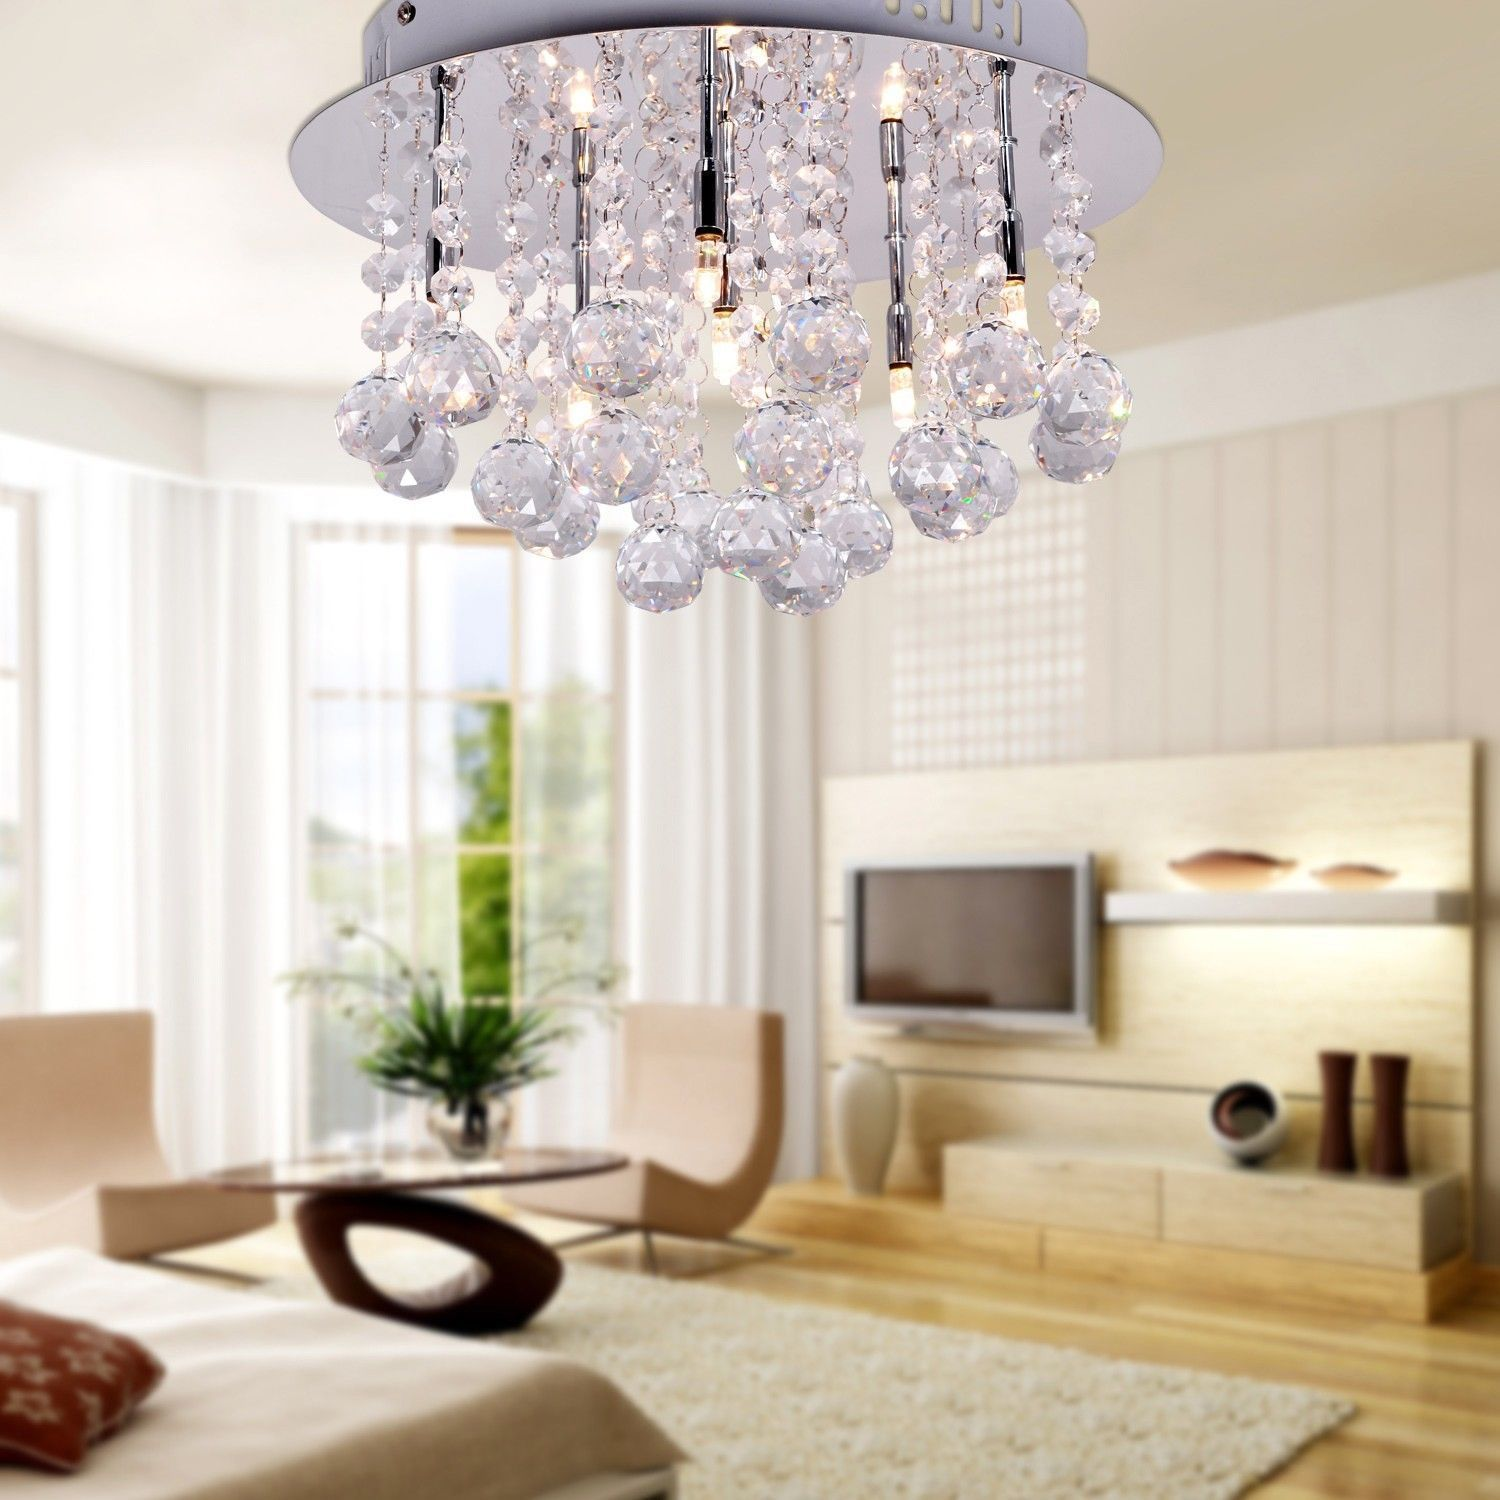 How To Find The Perfect Crystal Chandelier Pendant Ceiling Lamp Ceiling Pendant Lights Round Ceiling Light